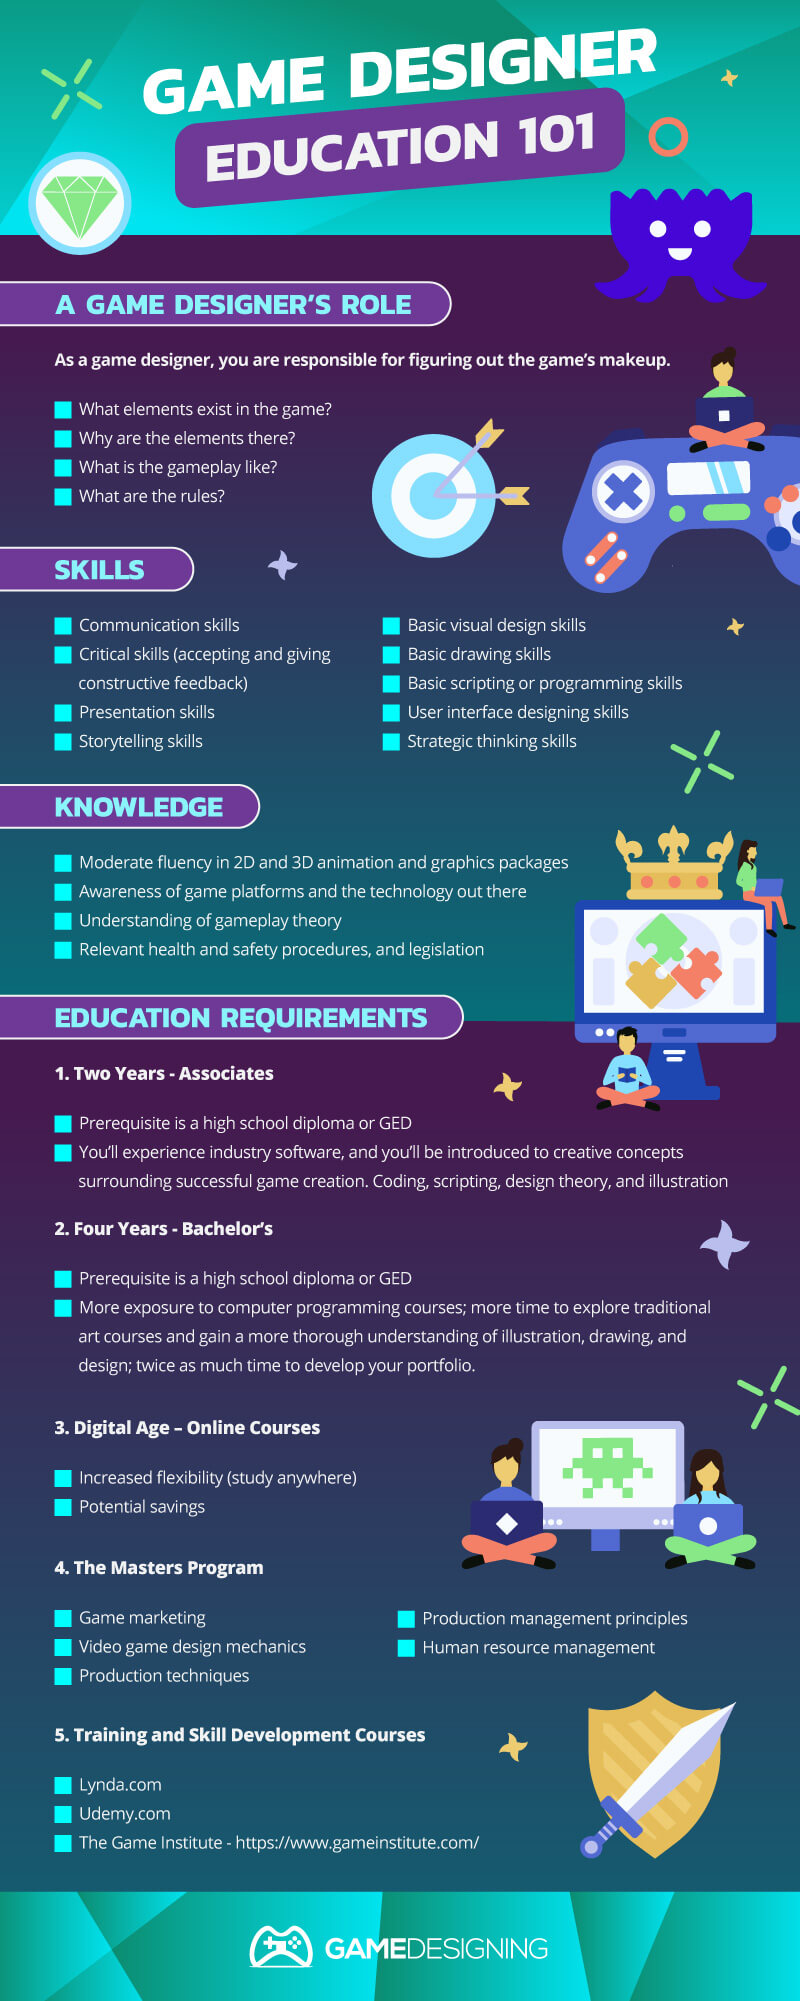 Video Game Designer Education Requirements 2020 Guide